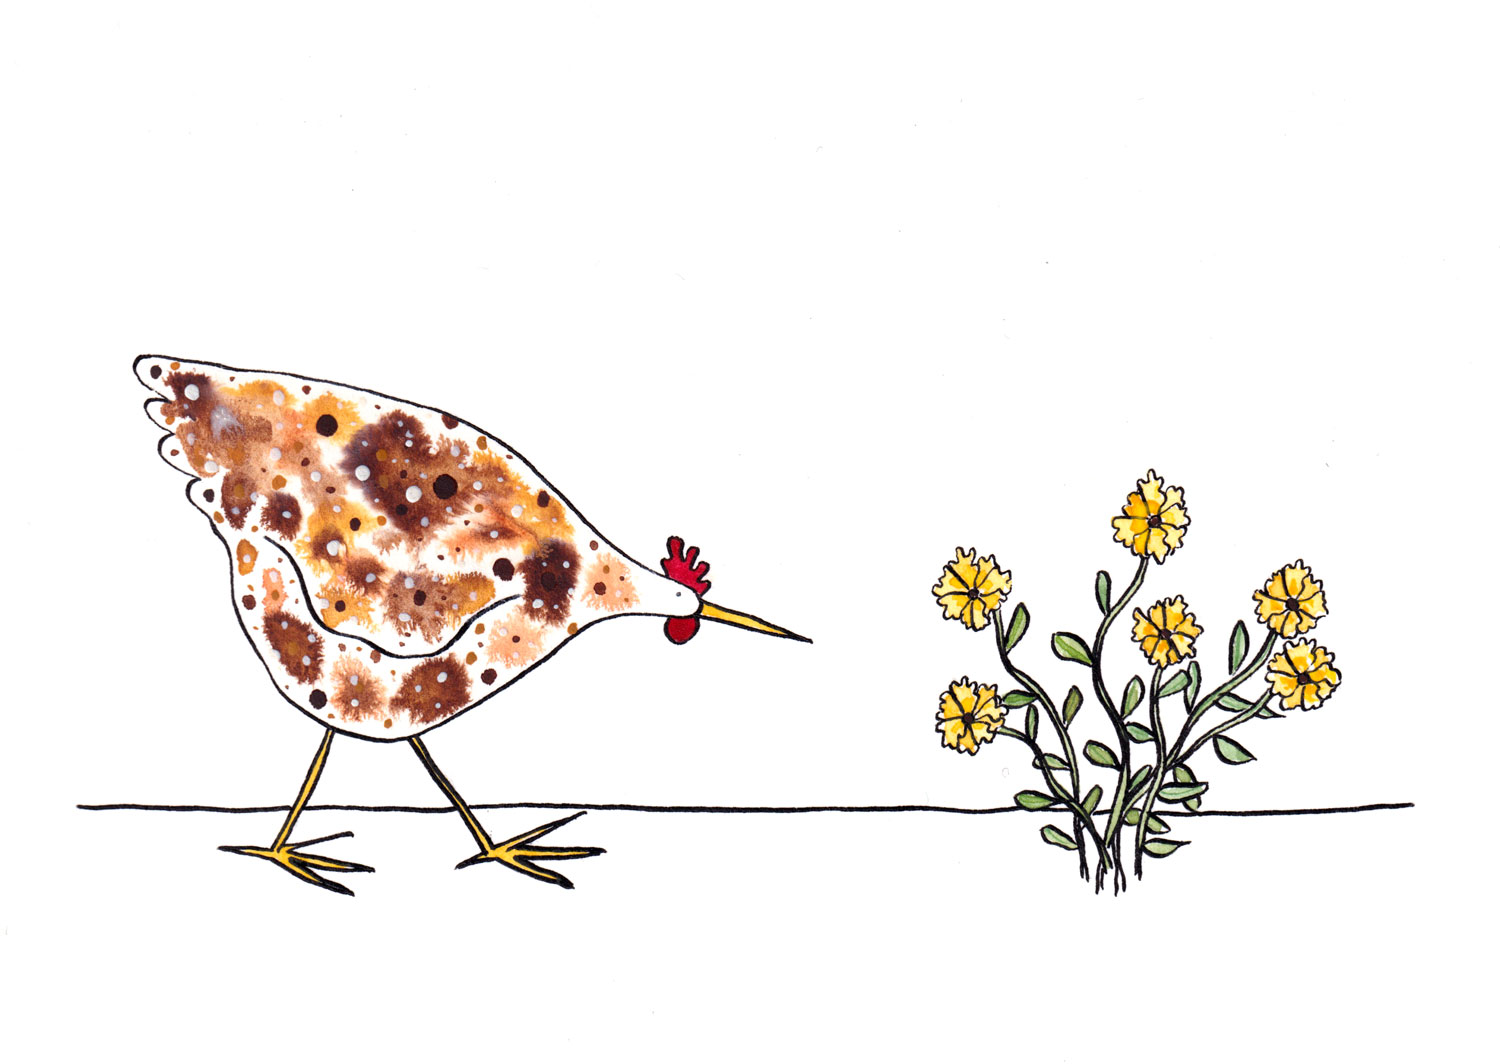 Watercolour painting of a hen looking at a clump of yellow flowers